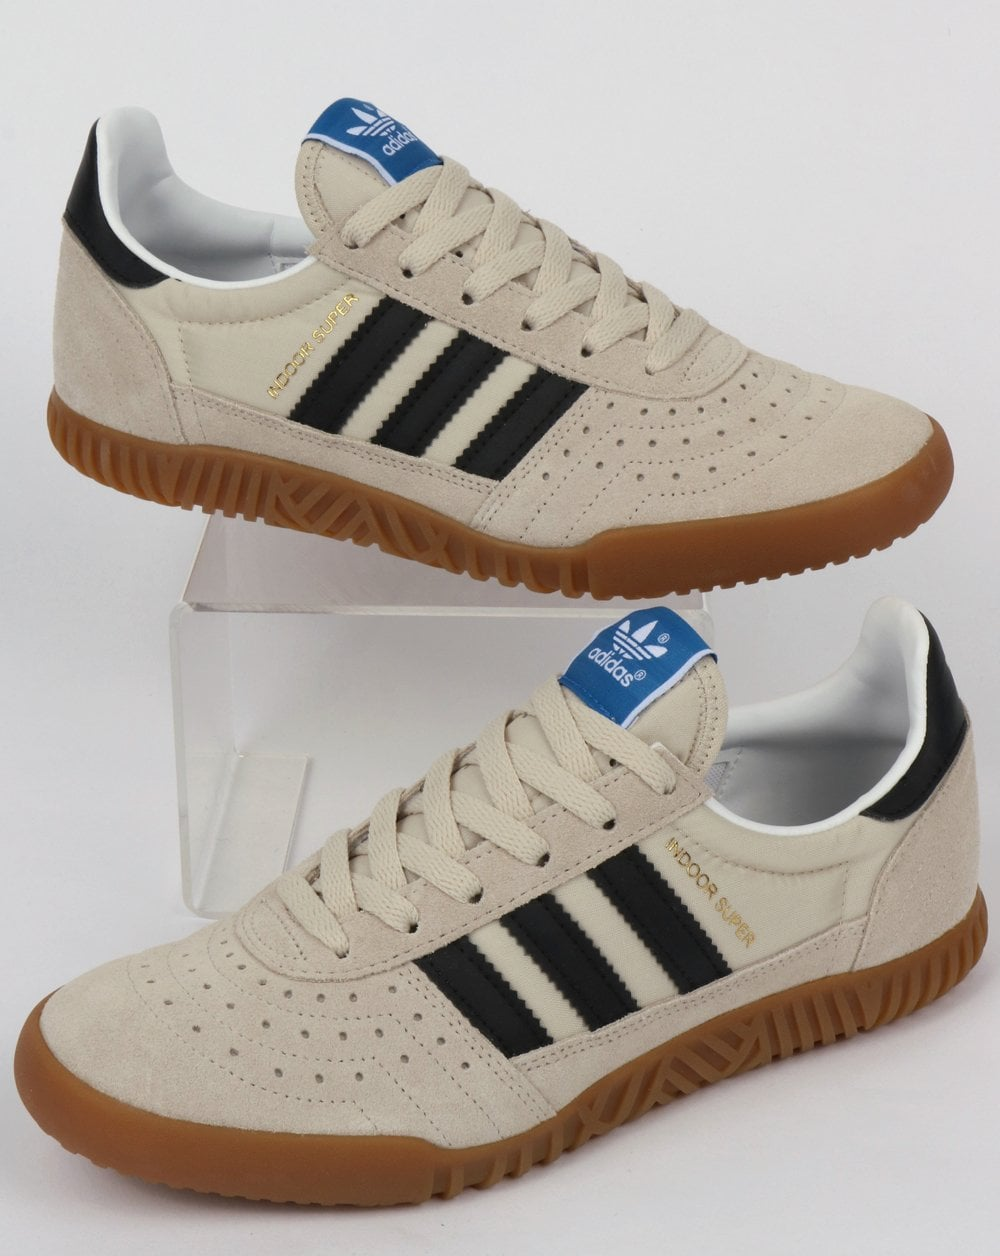 Adidas Indoor Super Trainers Clear BrownBlack